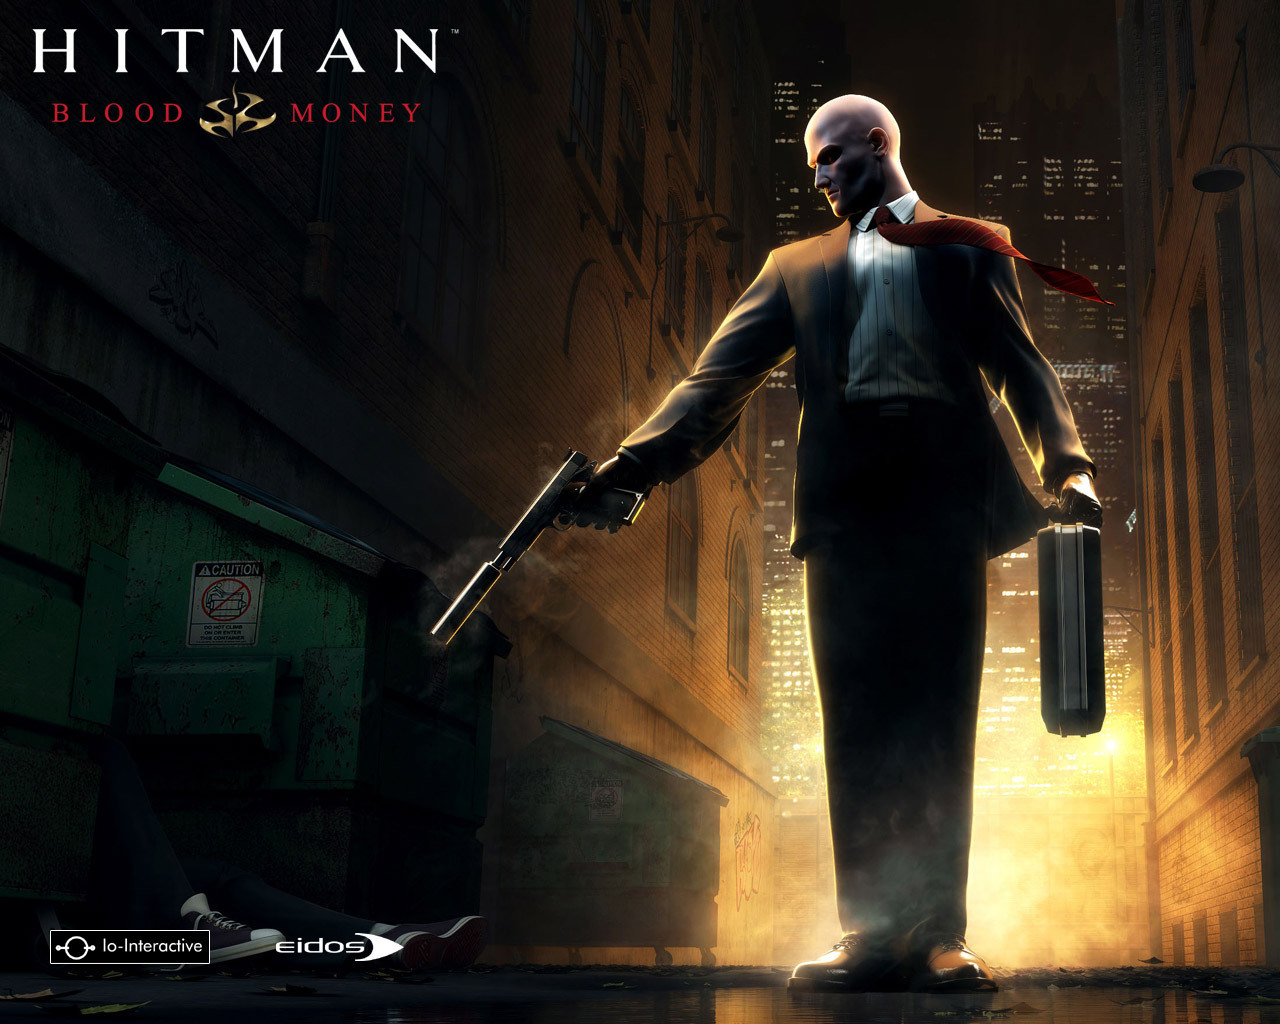 hitman wallpapers   Hitman Wallpaper 7638640 1280x1024